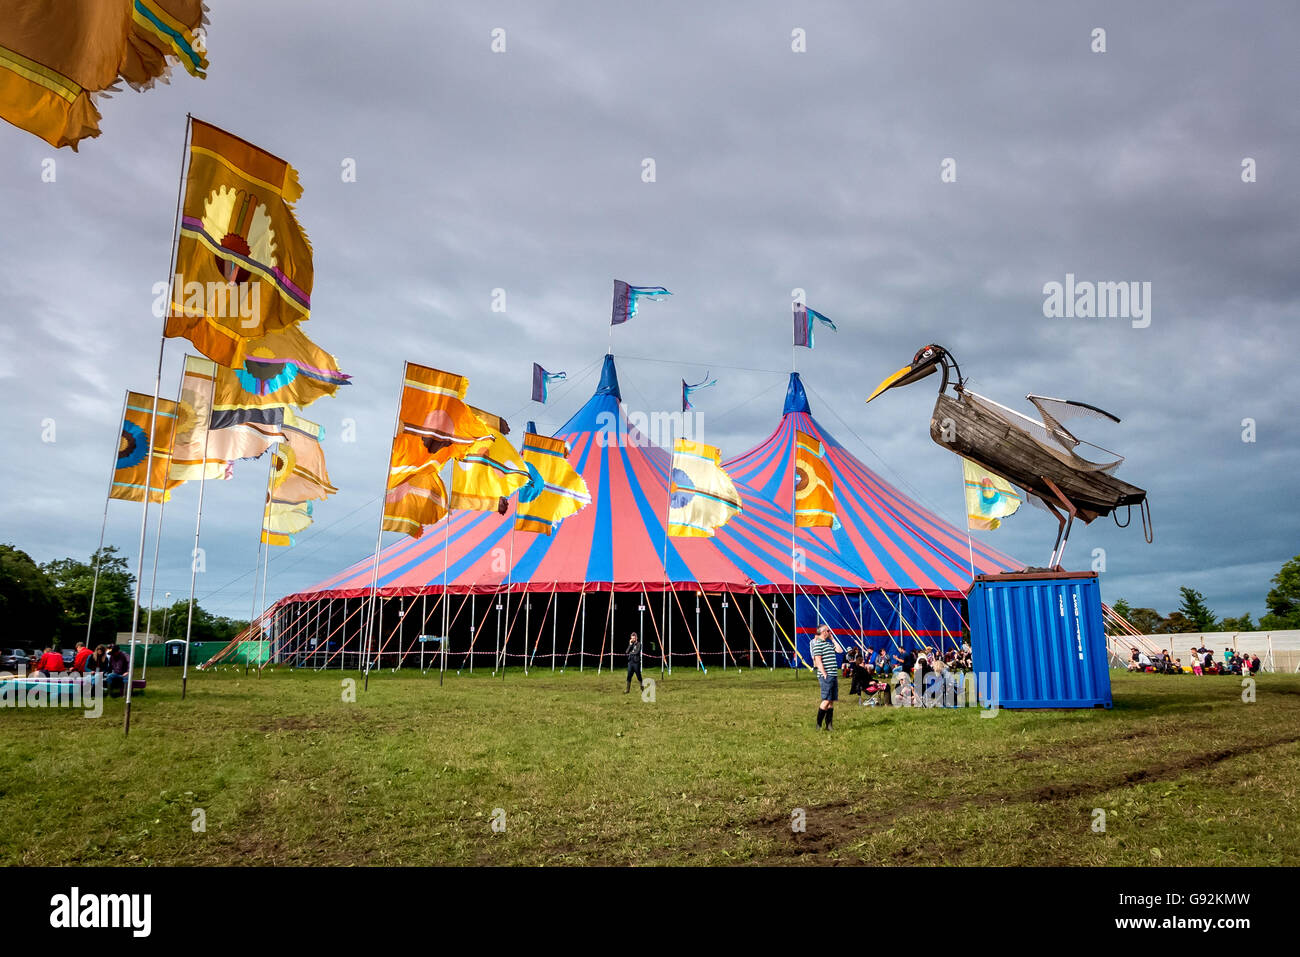 The Acoustic Tent and Field at The 2016 Glastonbury Festival of Contemporary Performing Arts & The Acoustic Tent and Field at The 2016 Glastonbury Festival of ...